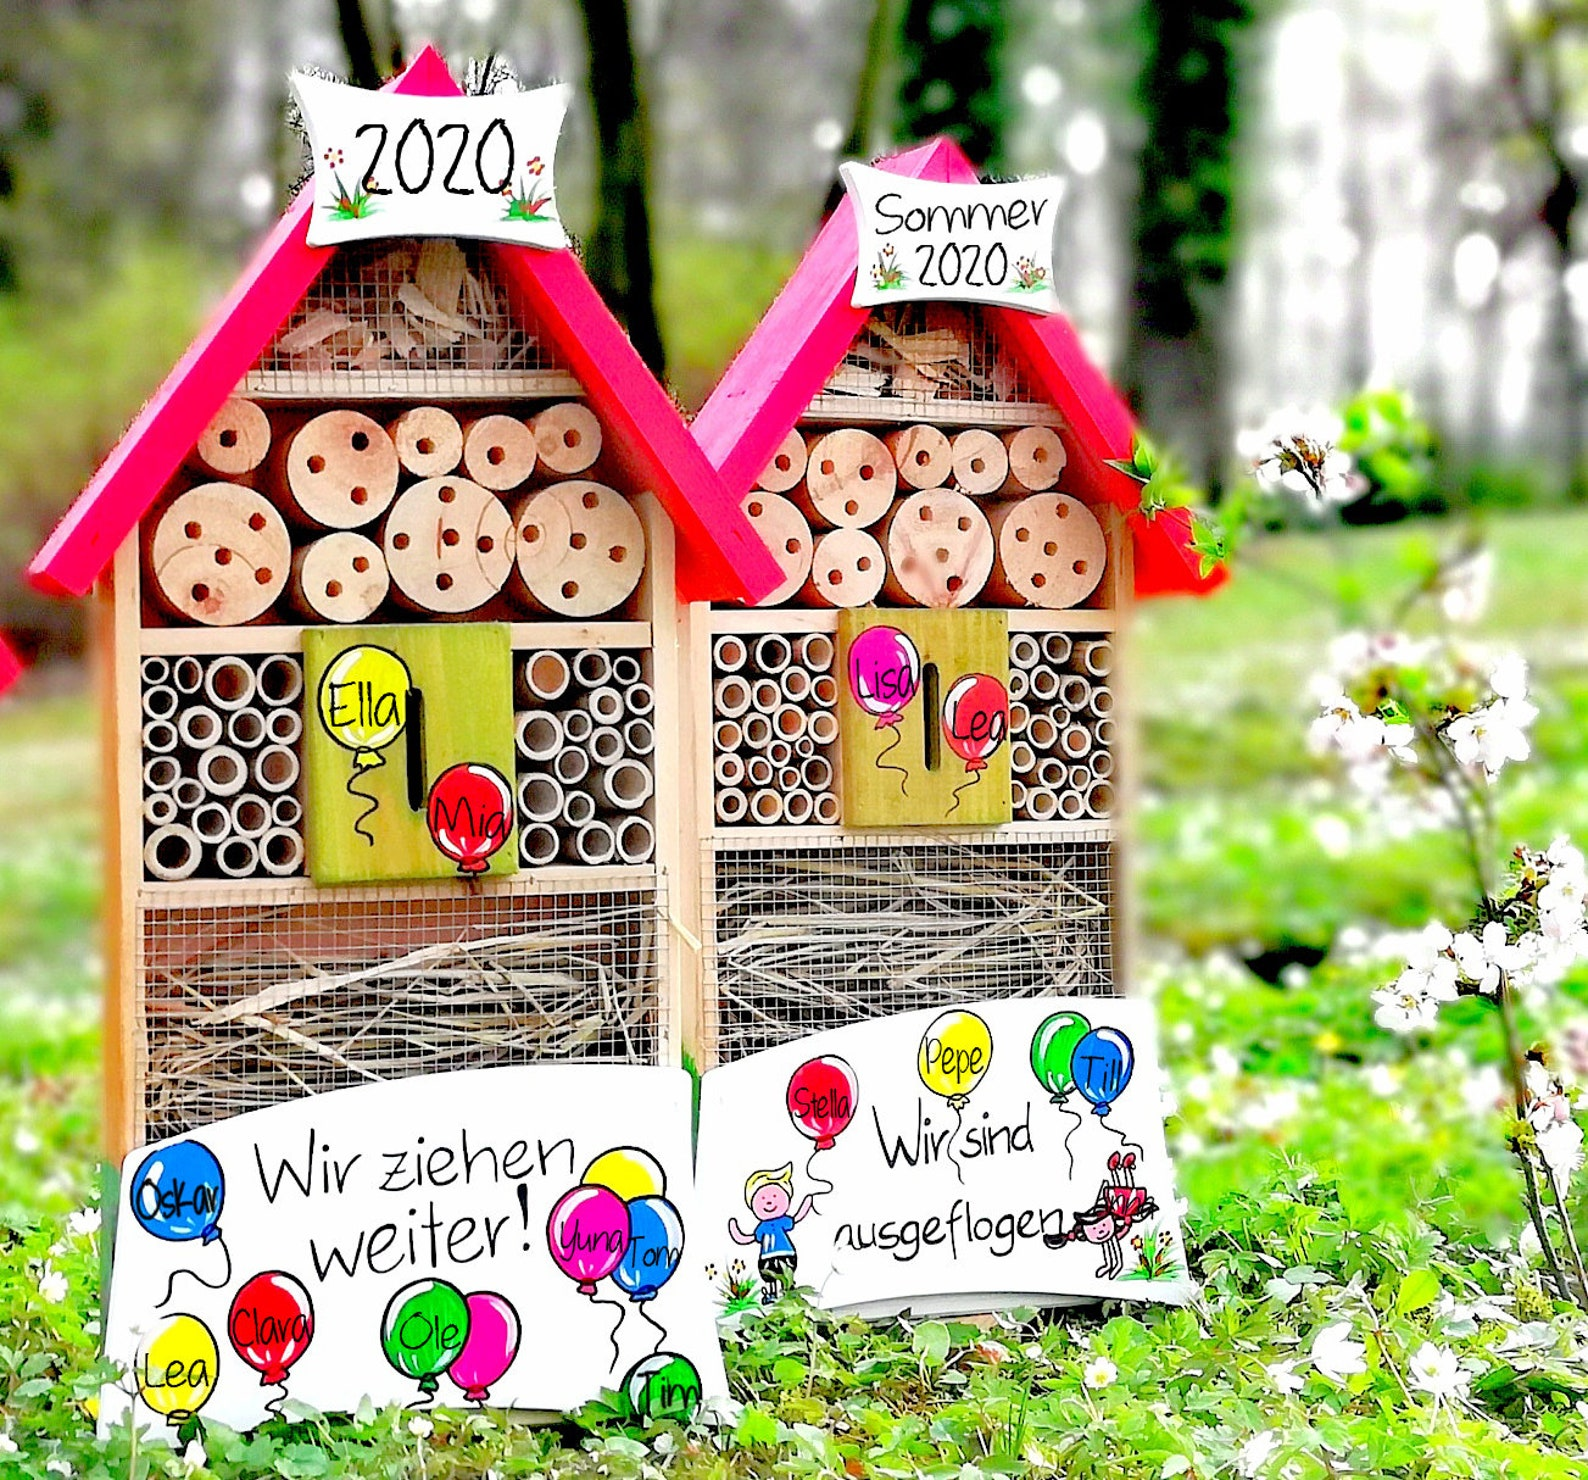 nursery farewell gift insect hotel gift educator insect